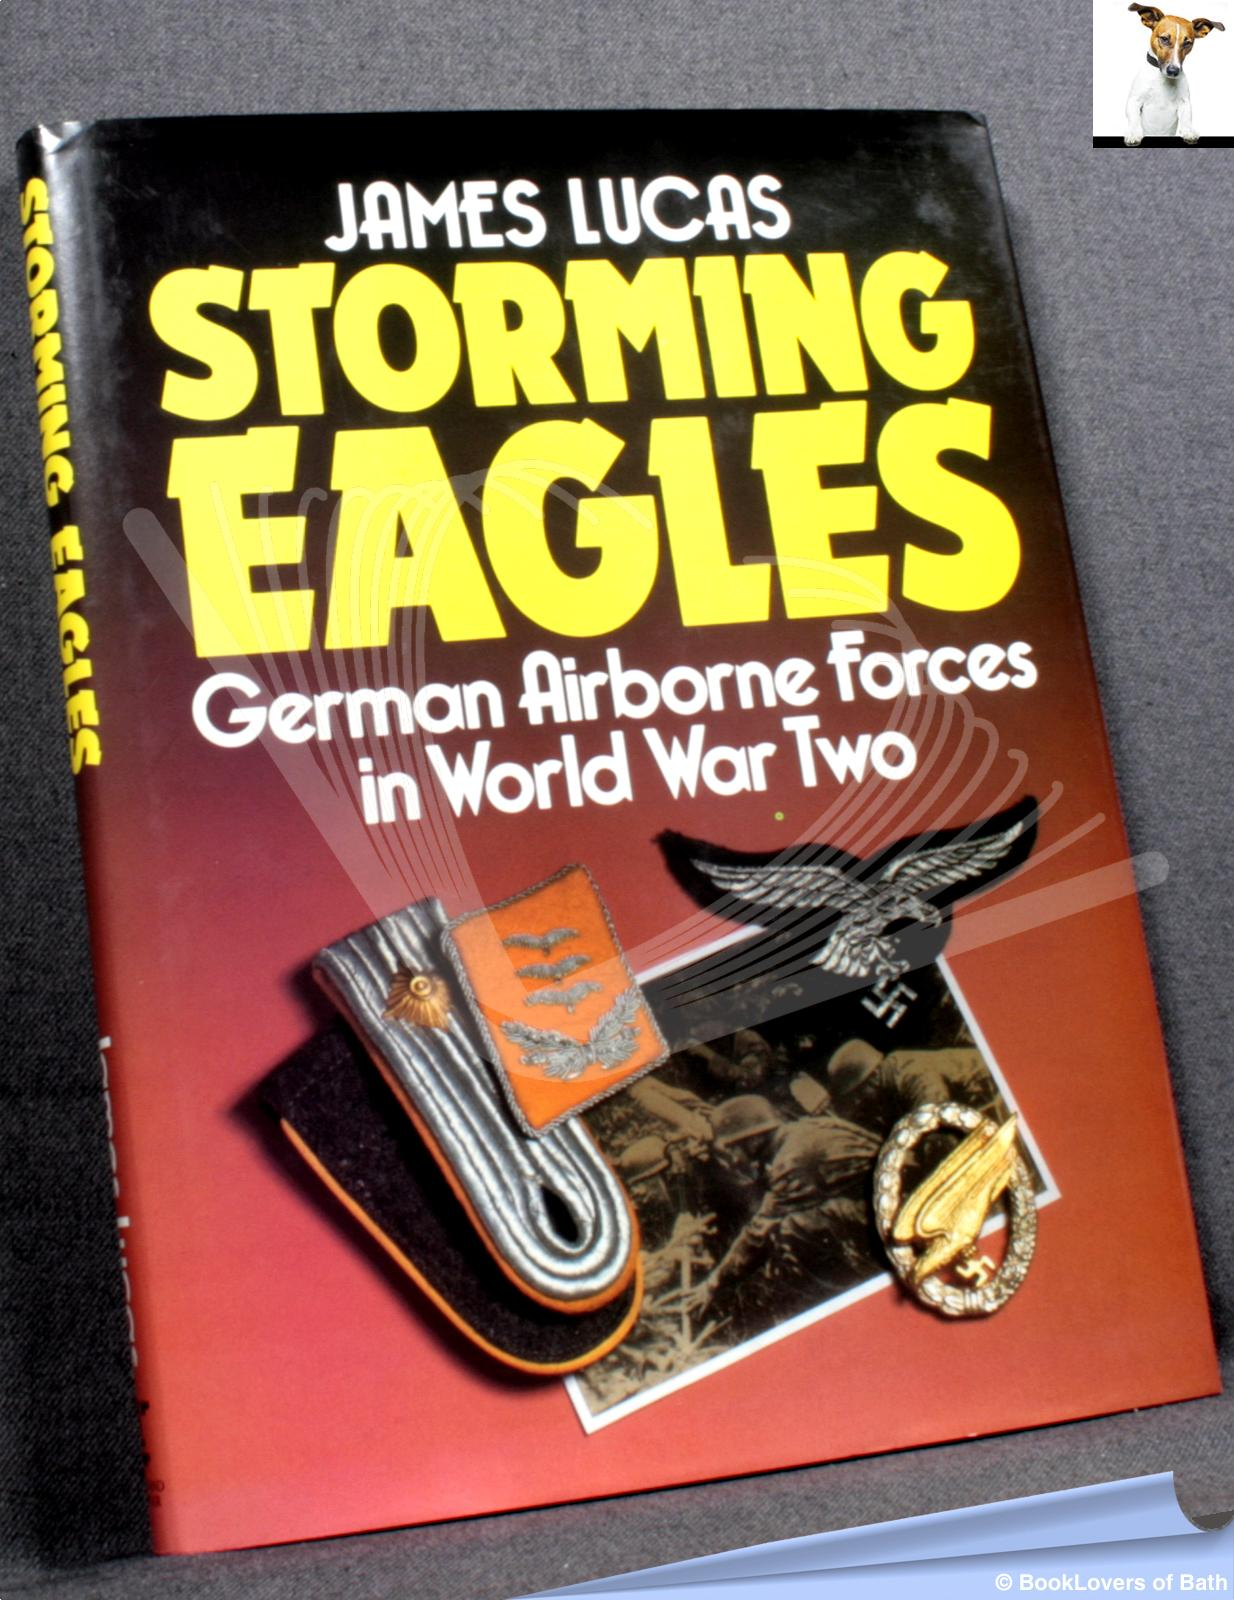 Storming Eagles - James Lucas